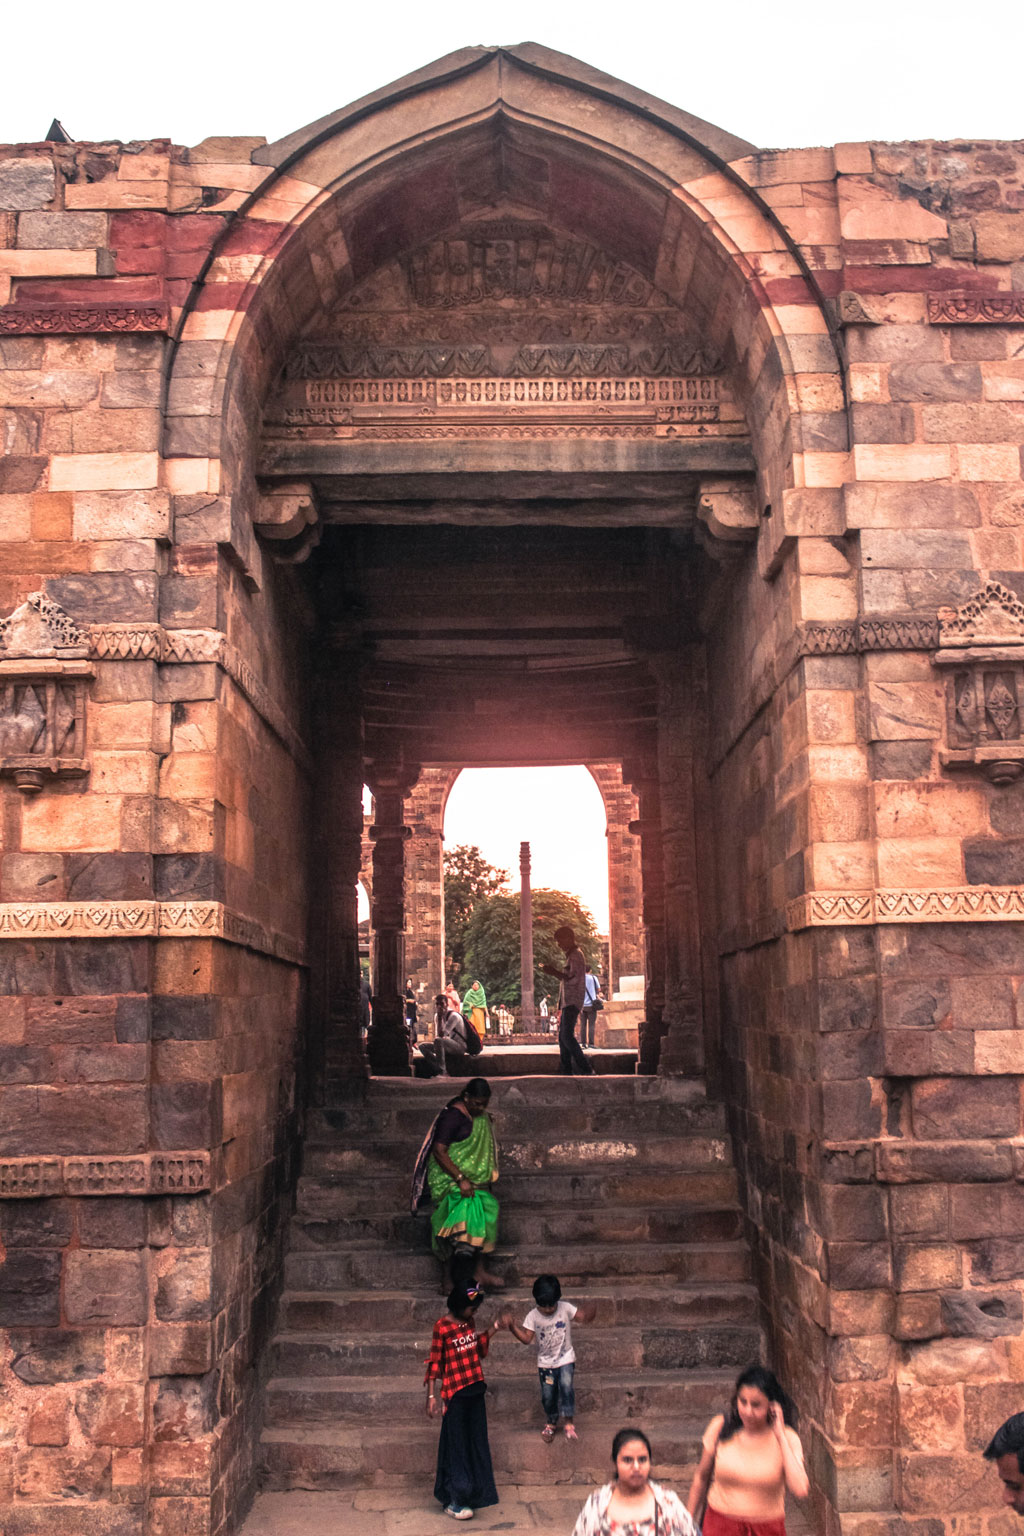 A gateway at the Qutub complex which leads you to the Quwwat-ul-Islam Mosque